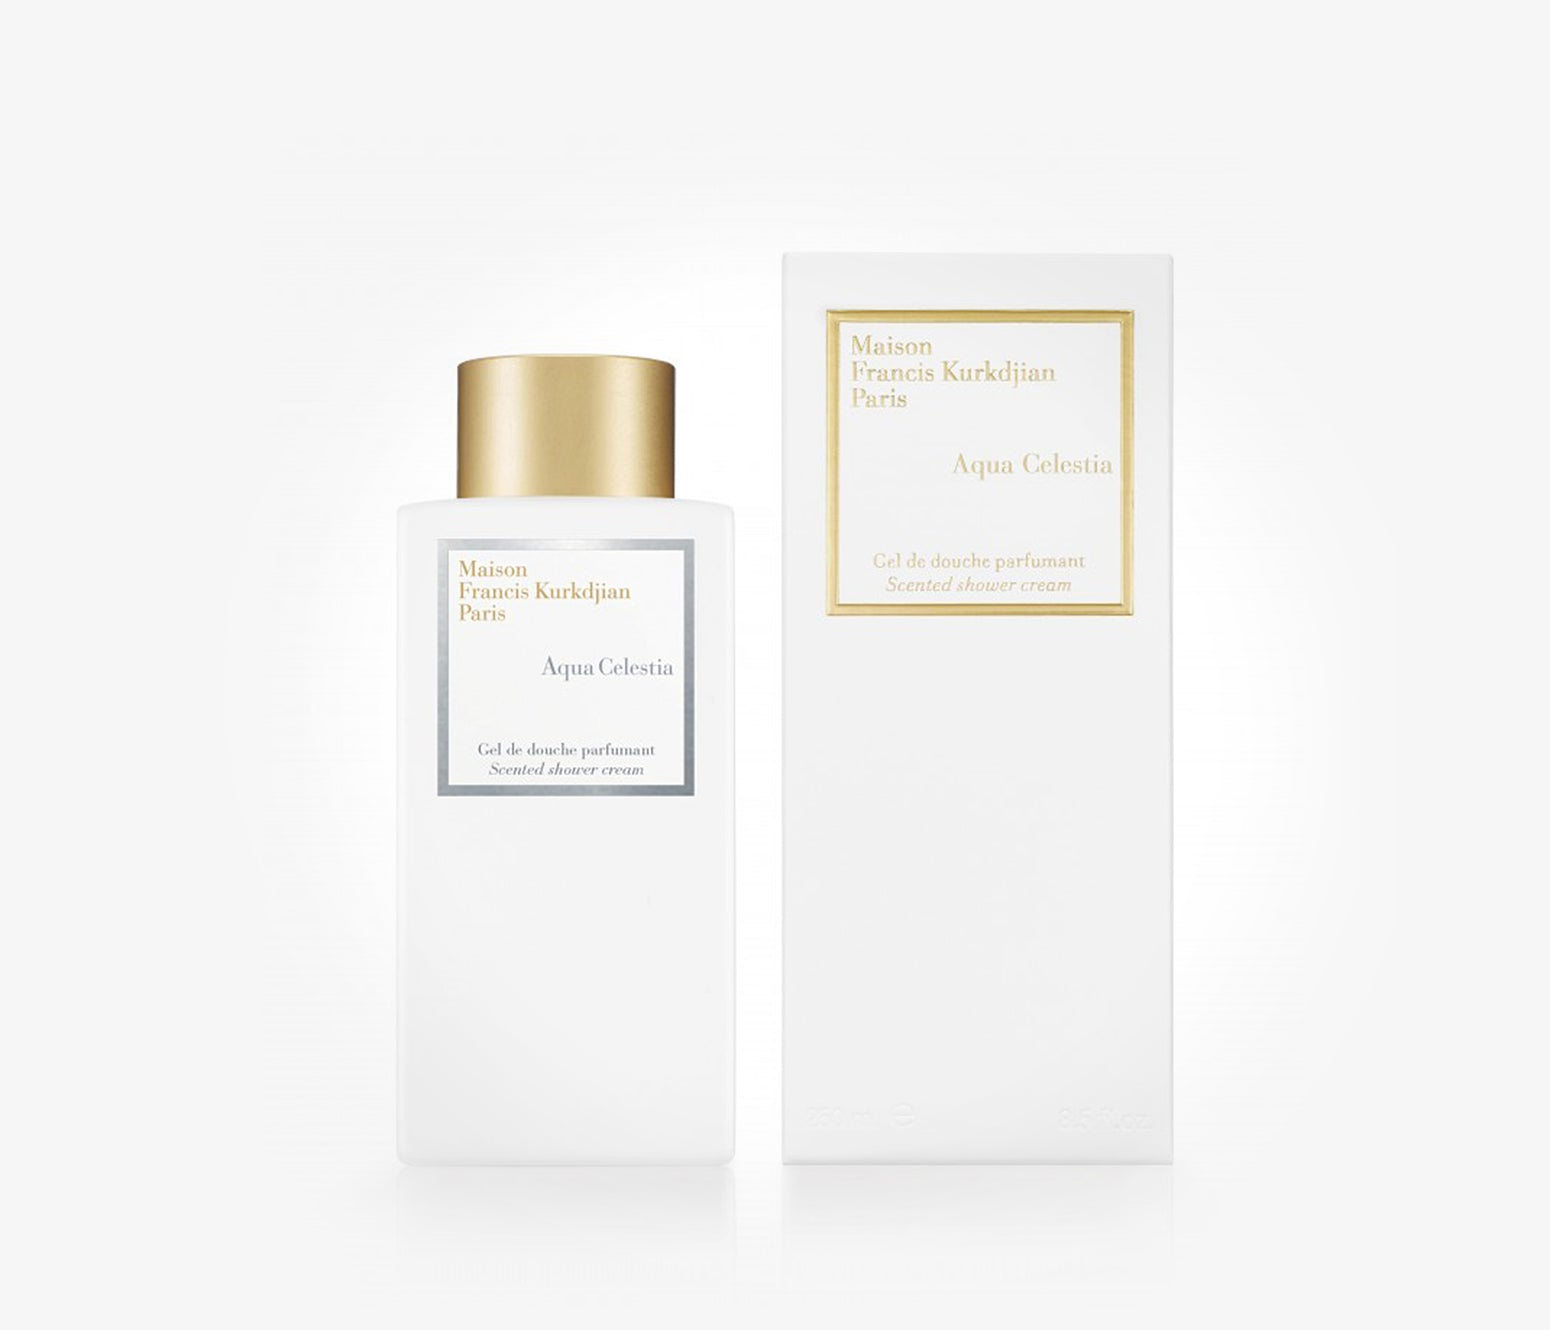 Maison Francis Kurkdjian - Aqua Celestia Scented Shower Cream - 250ml - PTH001 - product image - Body Cream - Les Senteurs